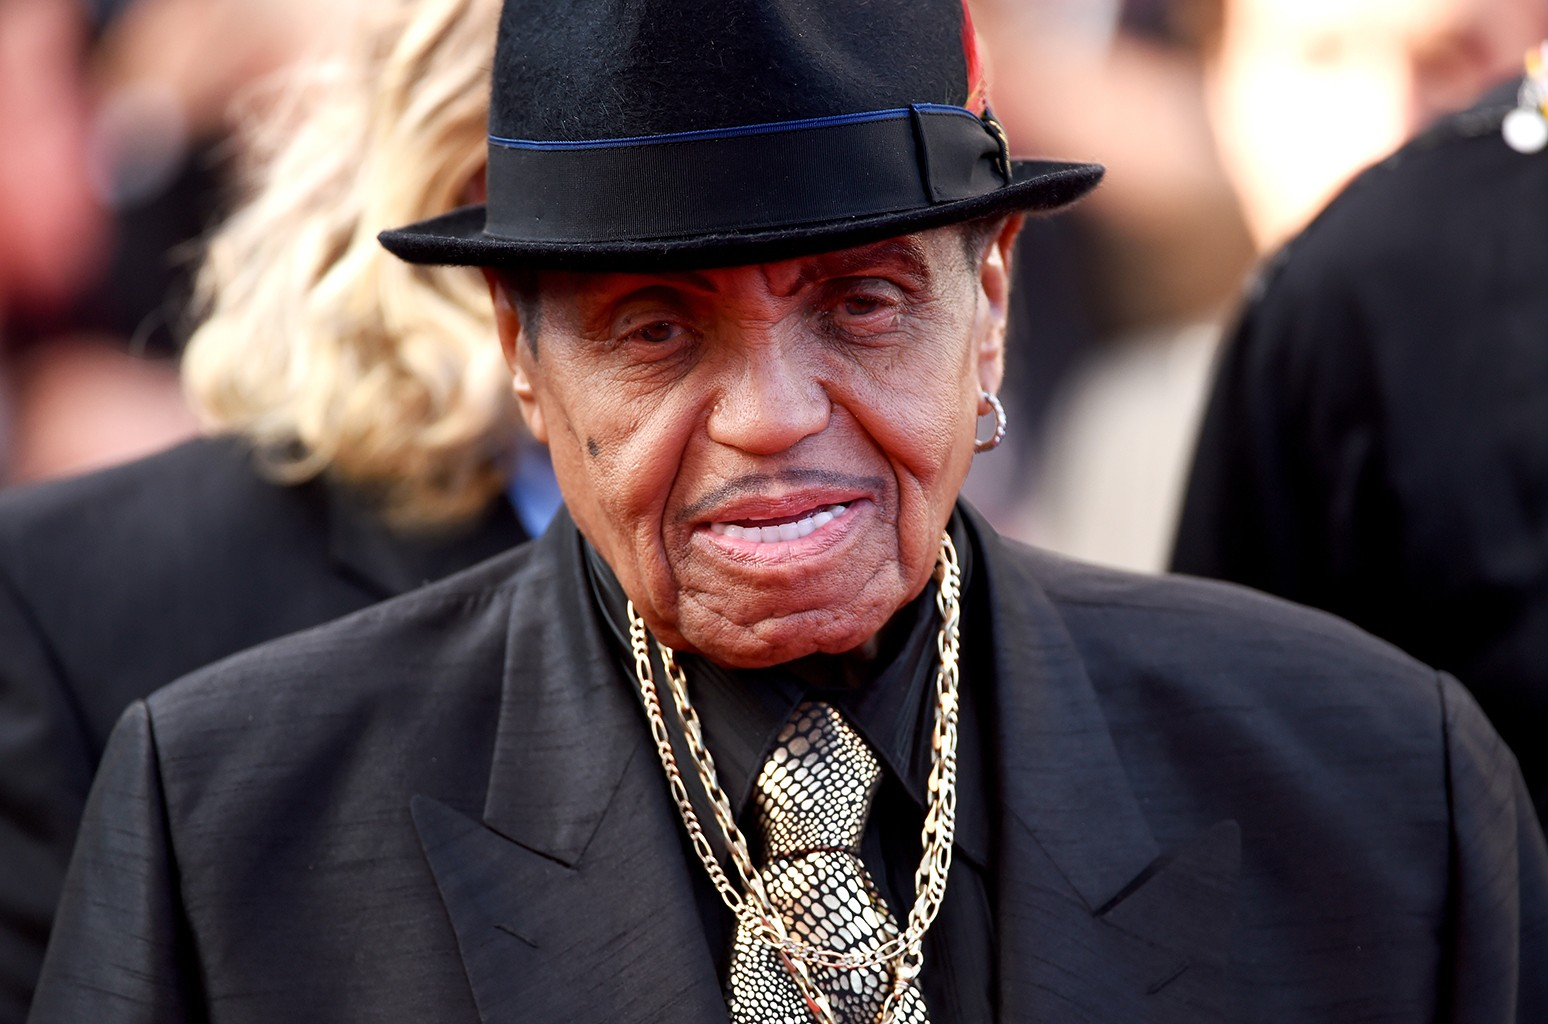 Joe Jackson at the 67th Annual Cannes Film Festival on May 23, 2014 in Cannes, France.